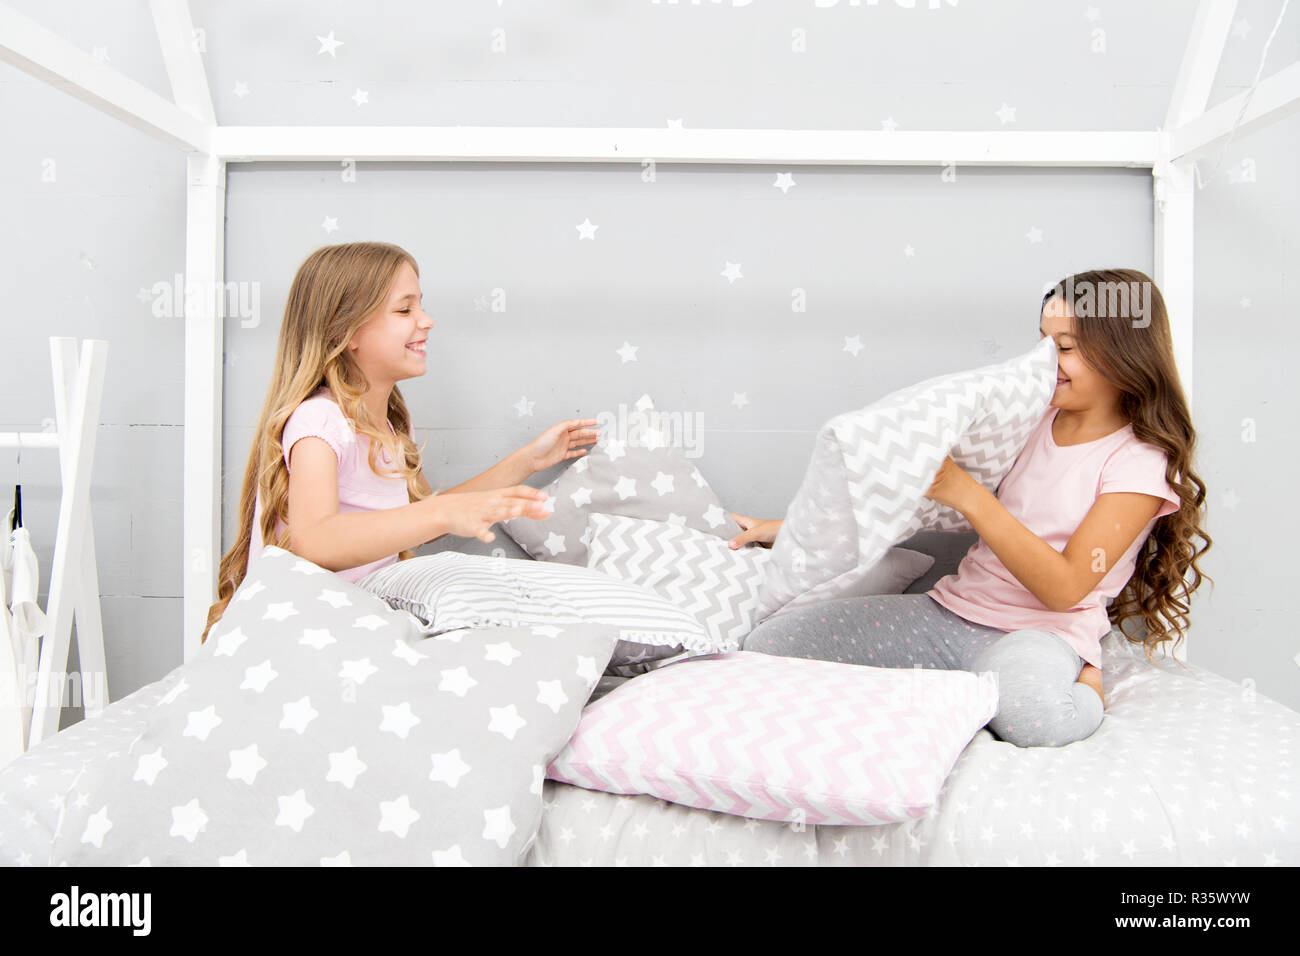 3c9a2b5e95 Best girls sleepover party ideas. Girls happy best friends in pajamas with pillows  sleepover party. Soulmates girls having fun sleepover party.